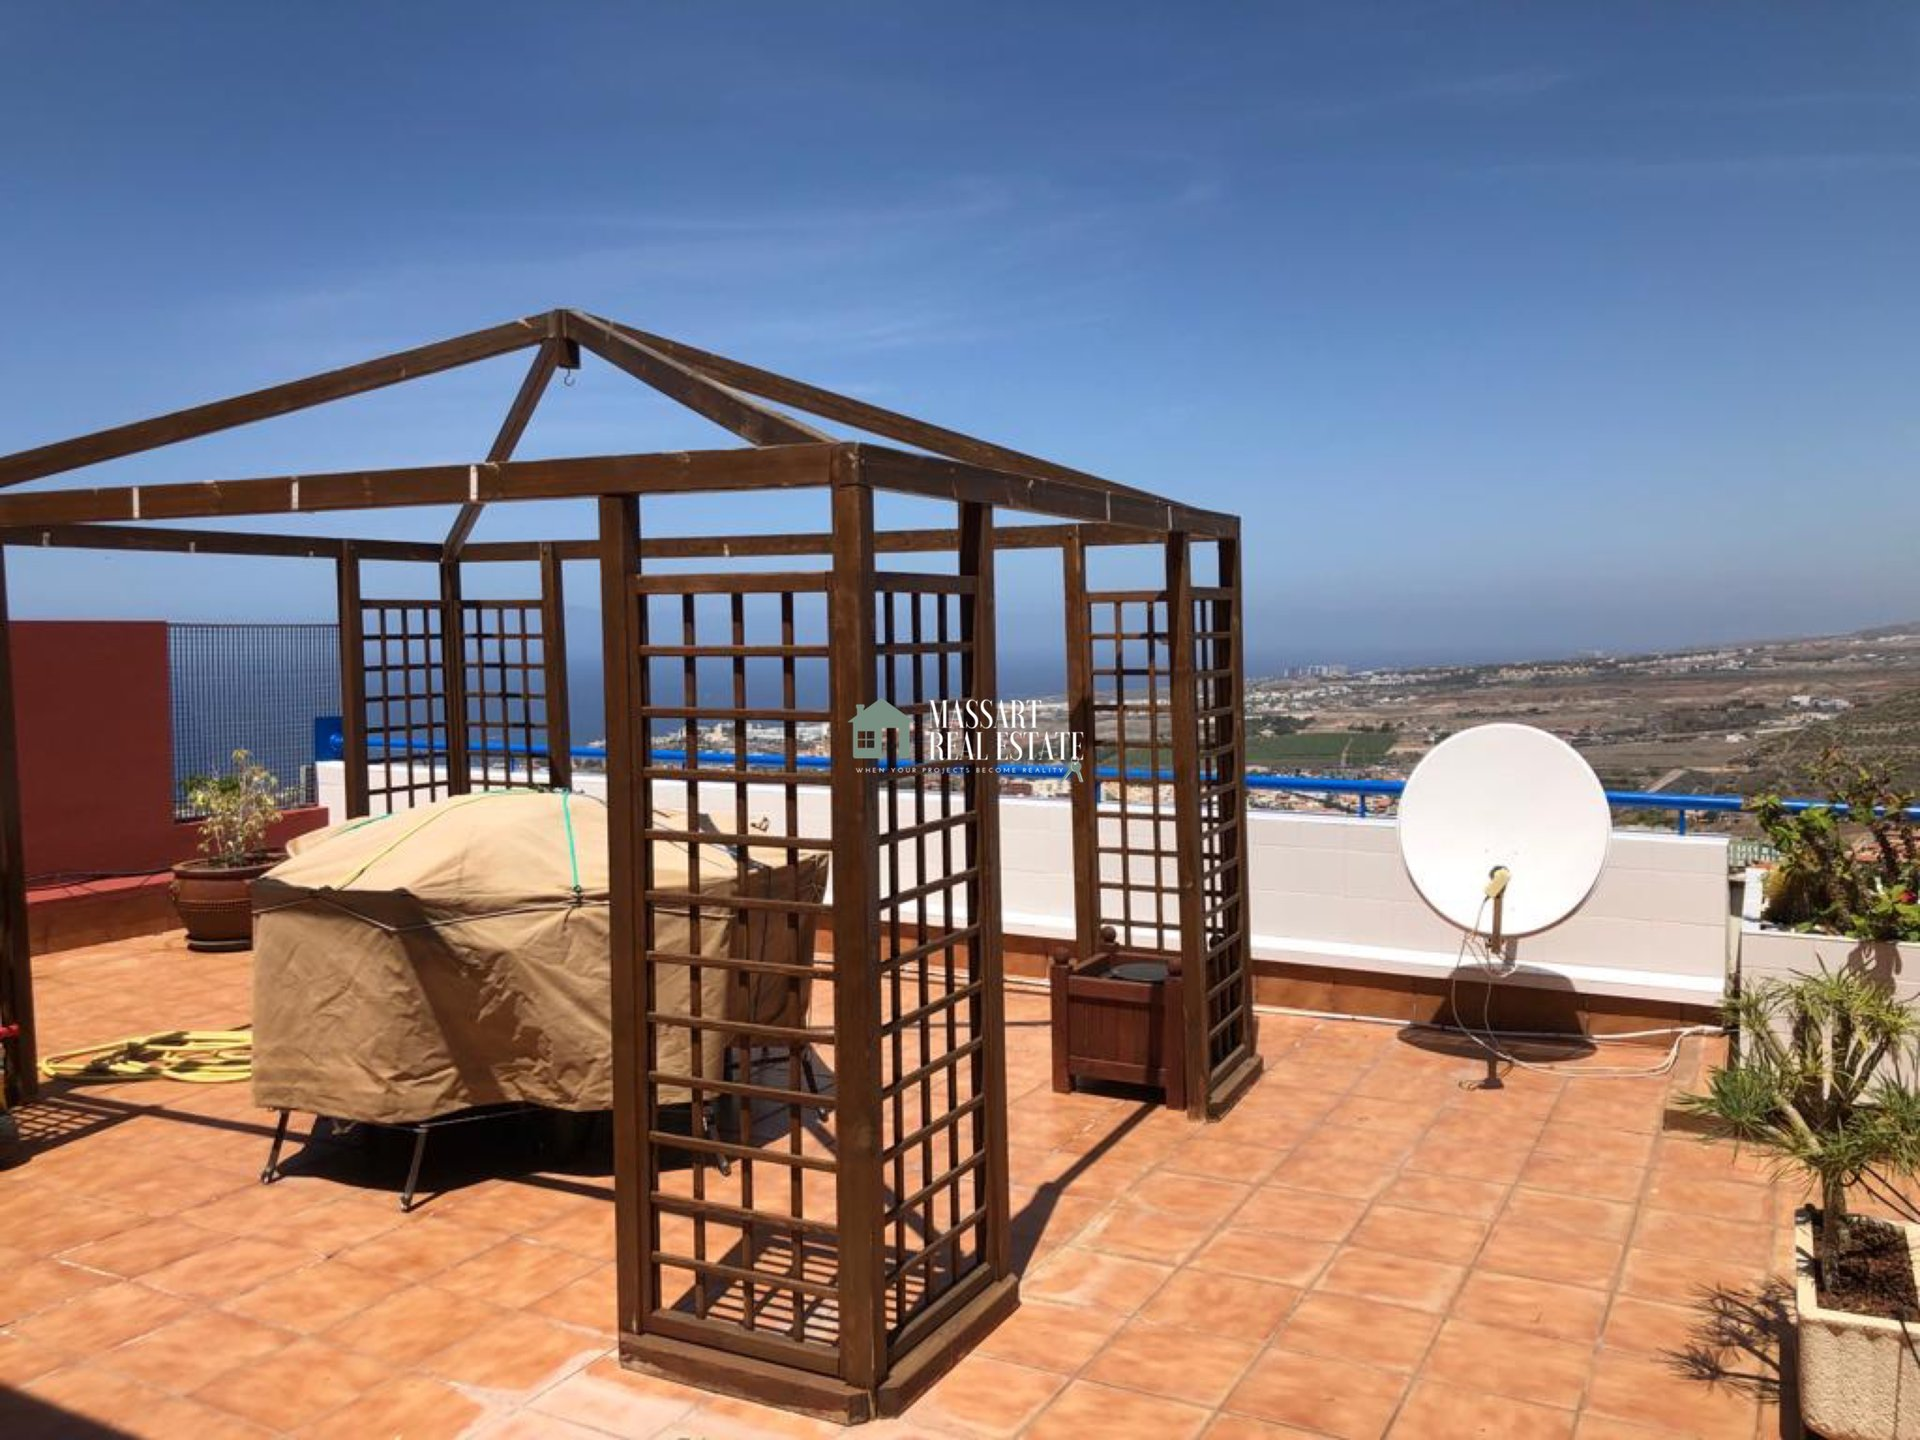 For sale in Torviscas Alto (Adeje), in the well-known residential Roque del Conde, a modern apartment of 75 m2 that offers privileged views.